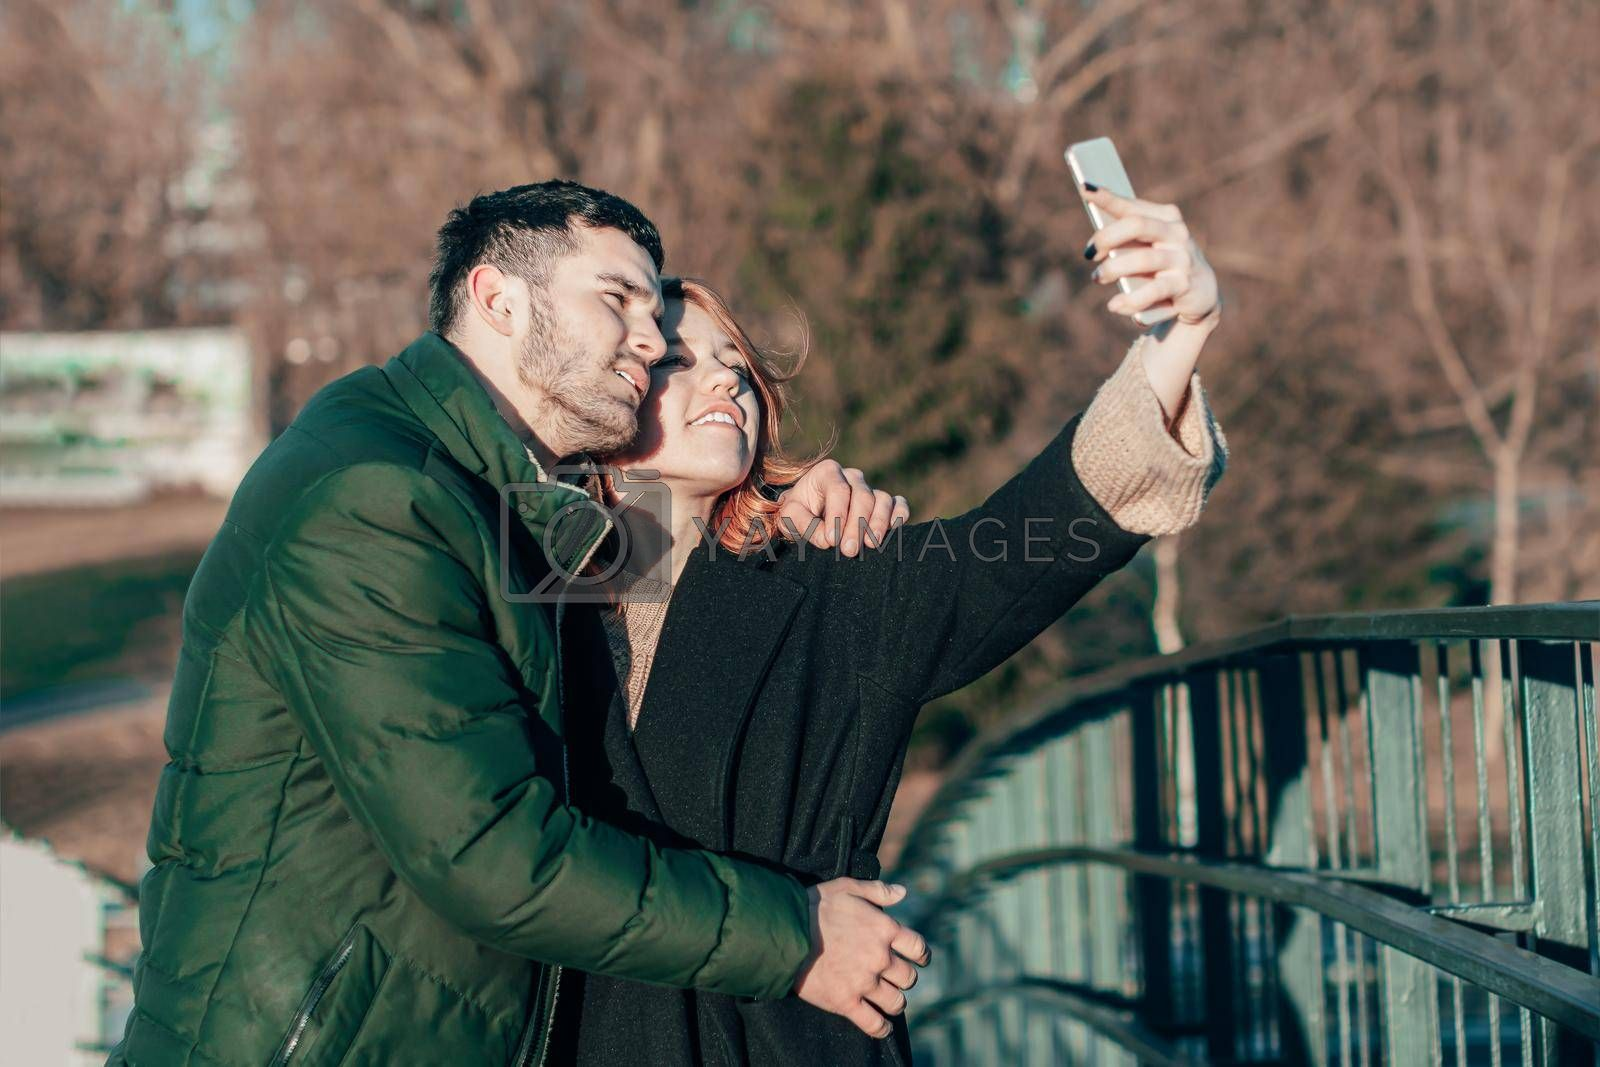 Cheerful Young Couple Making Selfie on the Bridge. Two Happy People Love Story on the Street